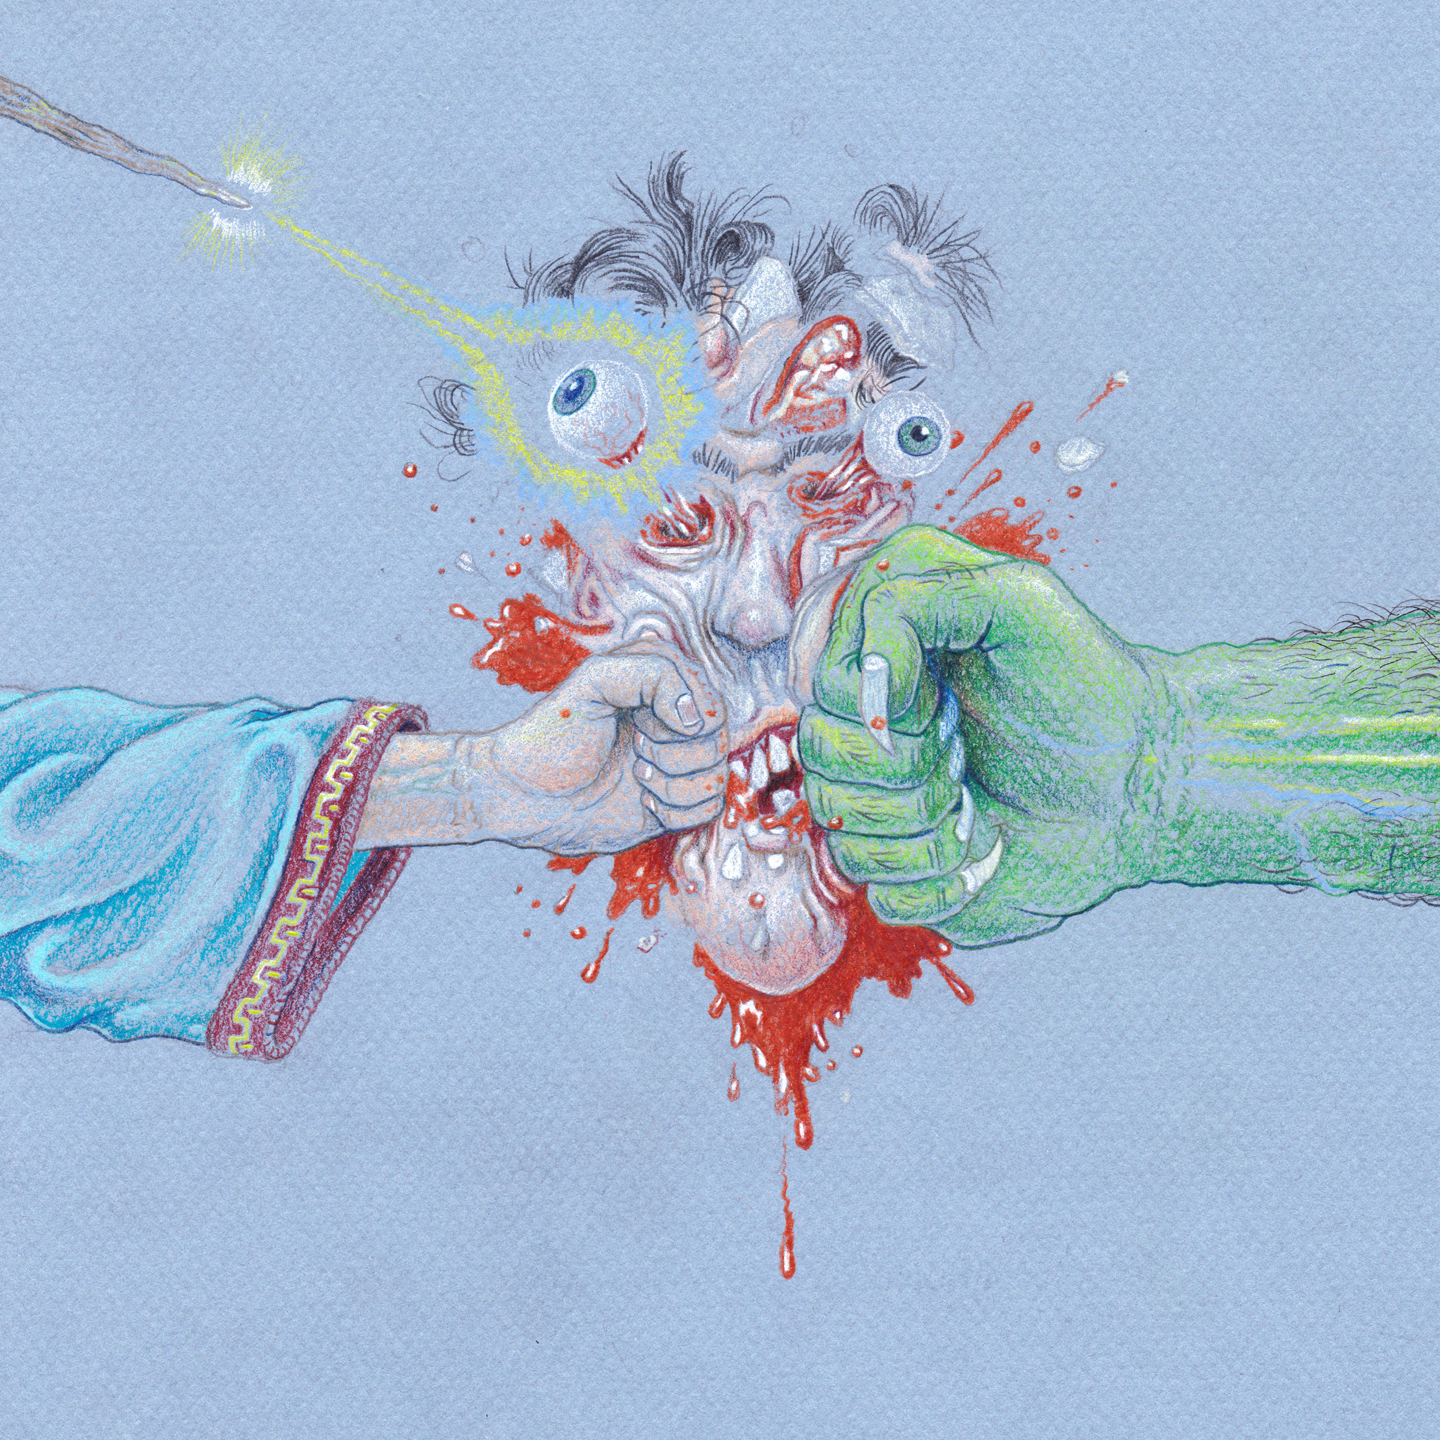 """From Both Sides, 7.5"""" x 7.5"""", colored pencil on paper"""